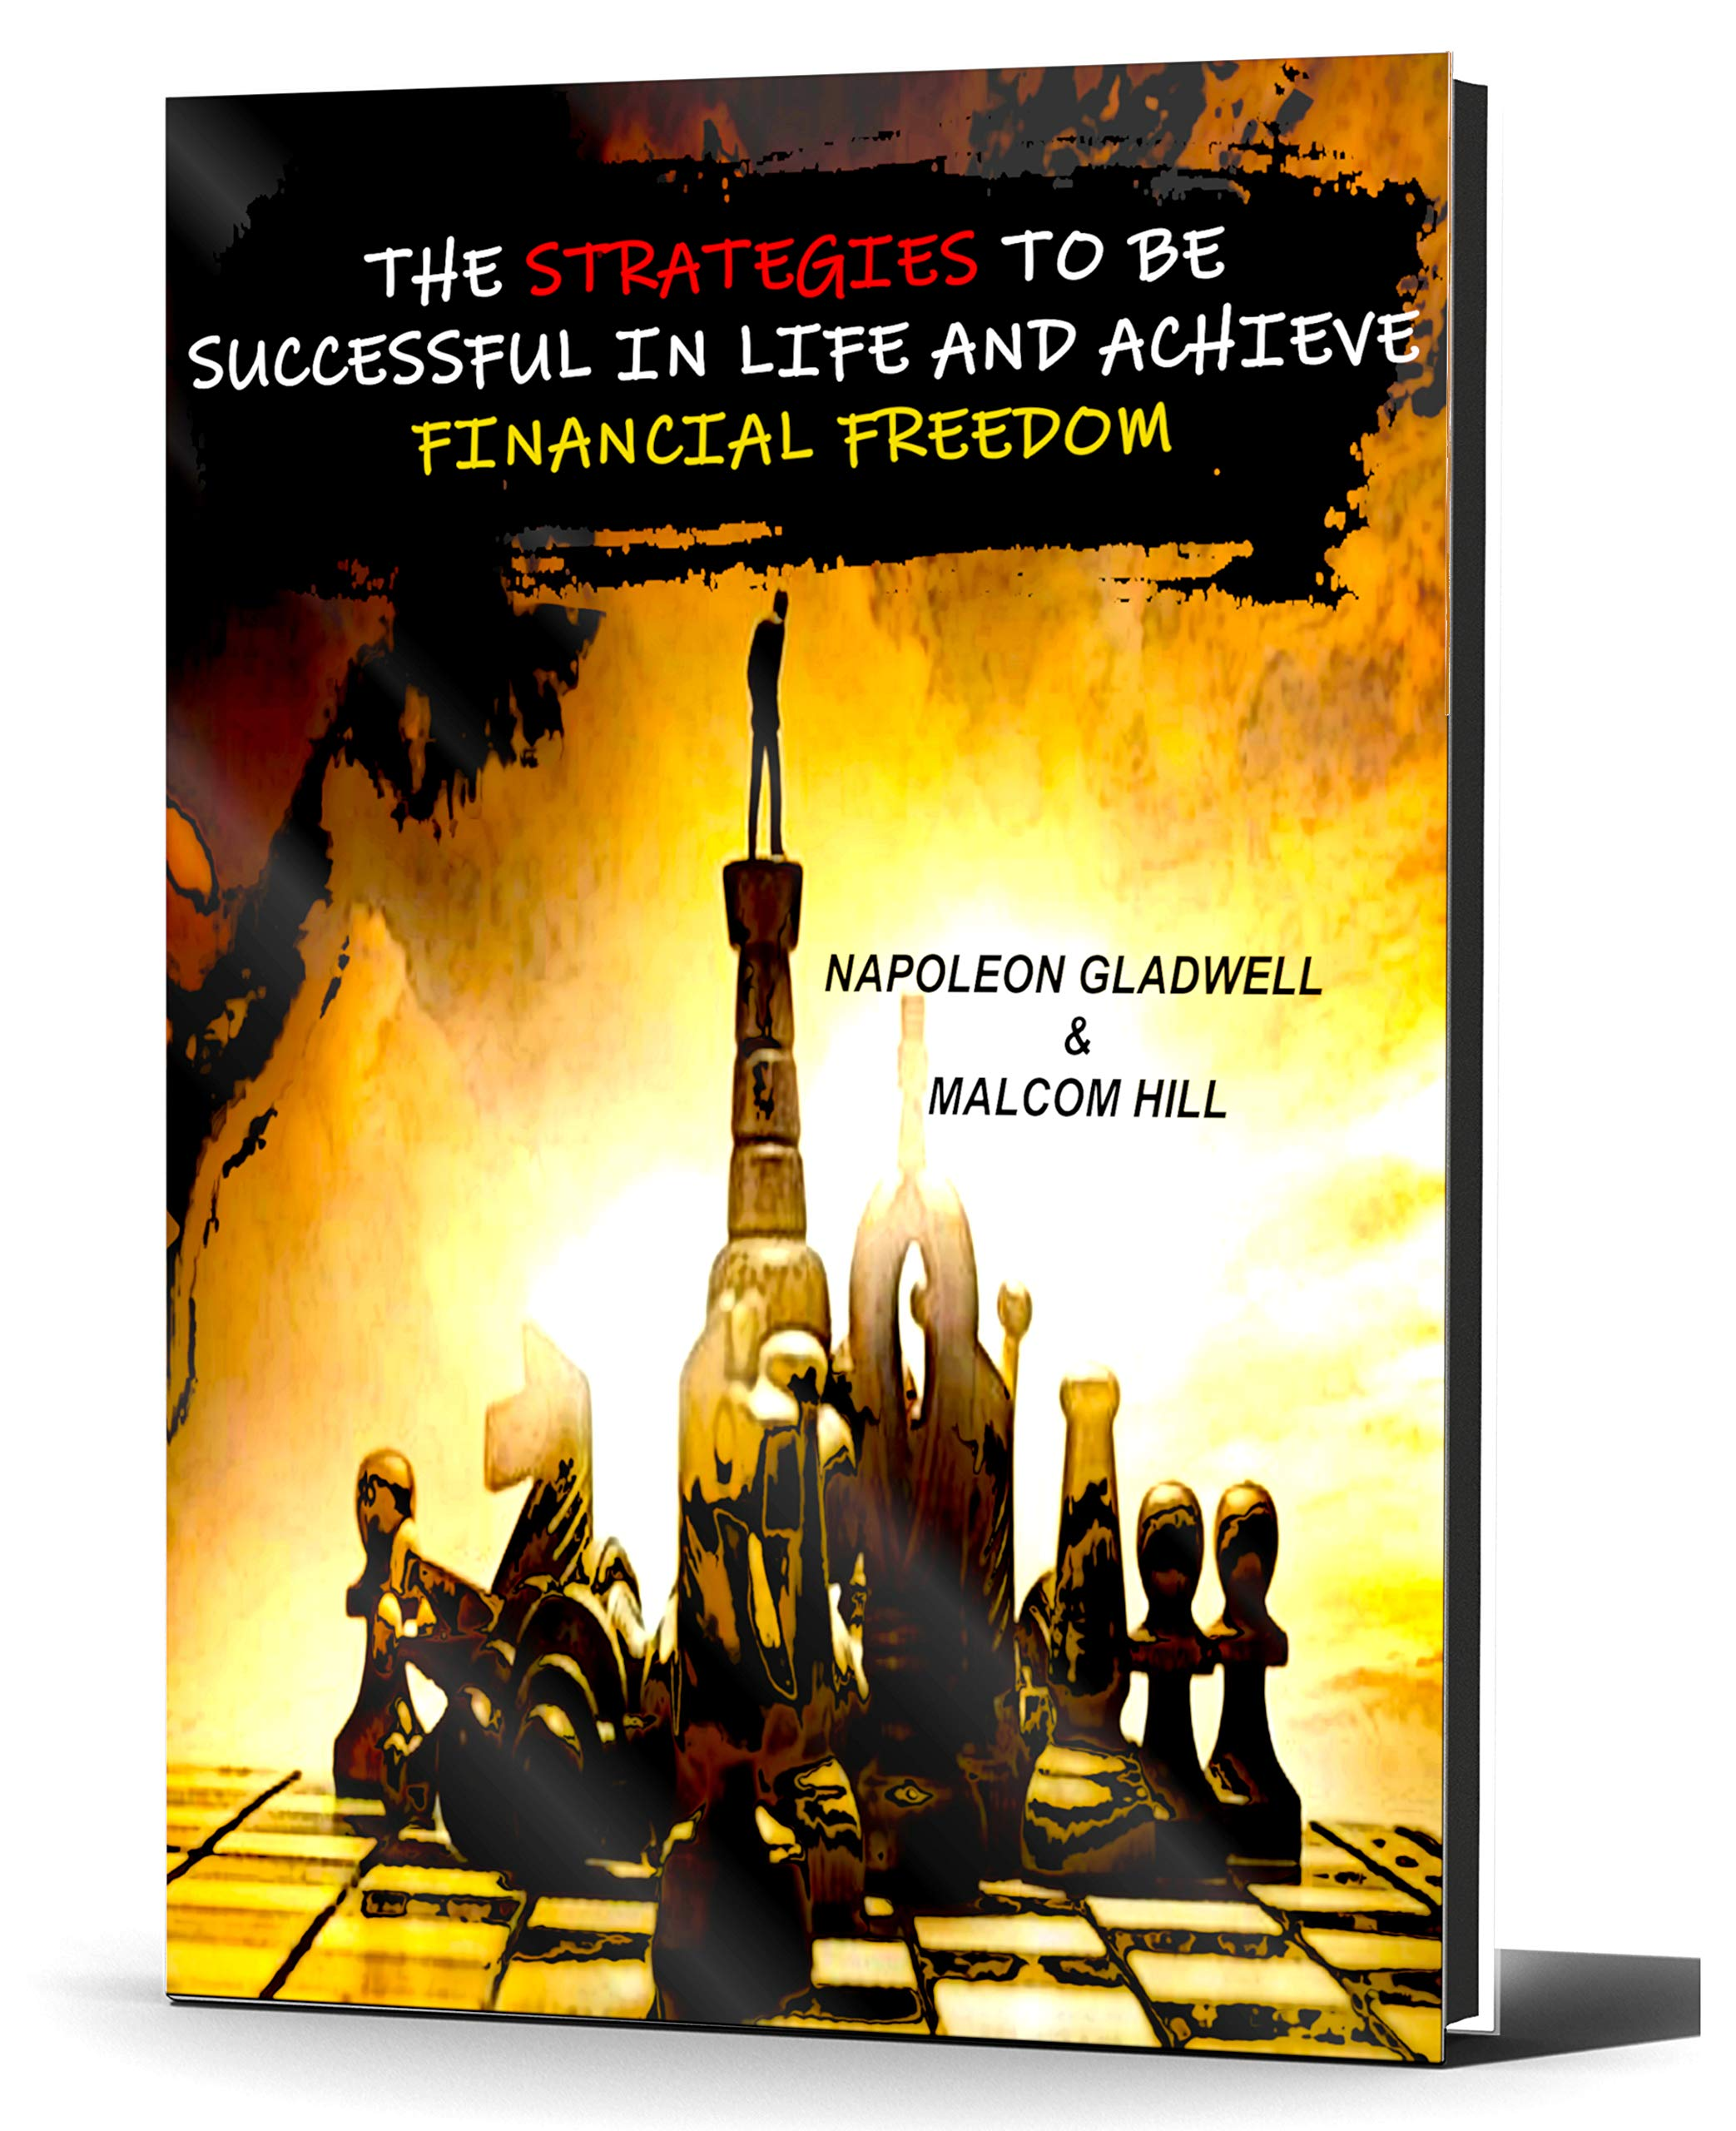 THE STRATEGIES TO BE SUCCESSFUL IN LIFE AND ACHIEVE FINANCIAL FREEDOM: LEARN HOW TO WIN IN A POST PANDEMIC CHANGED WORLD